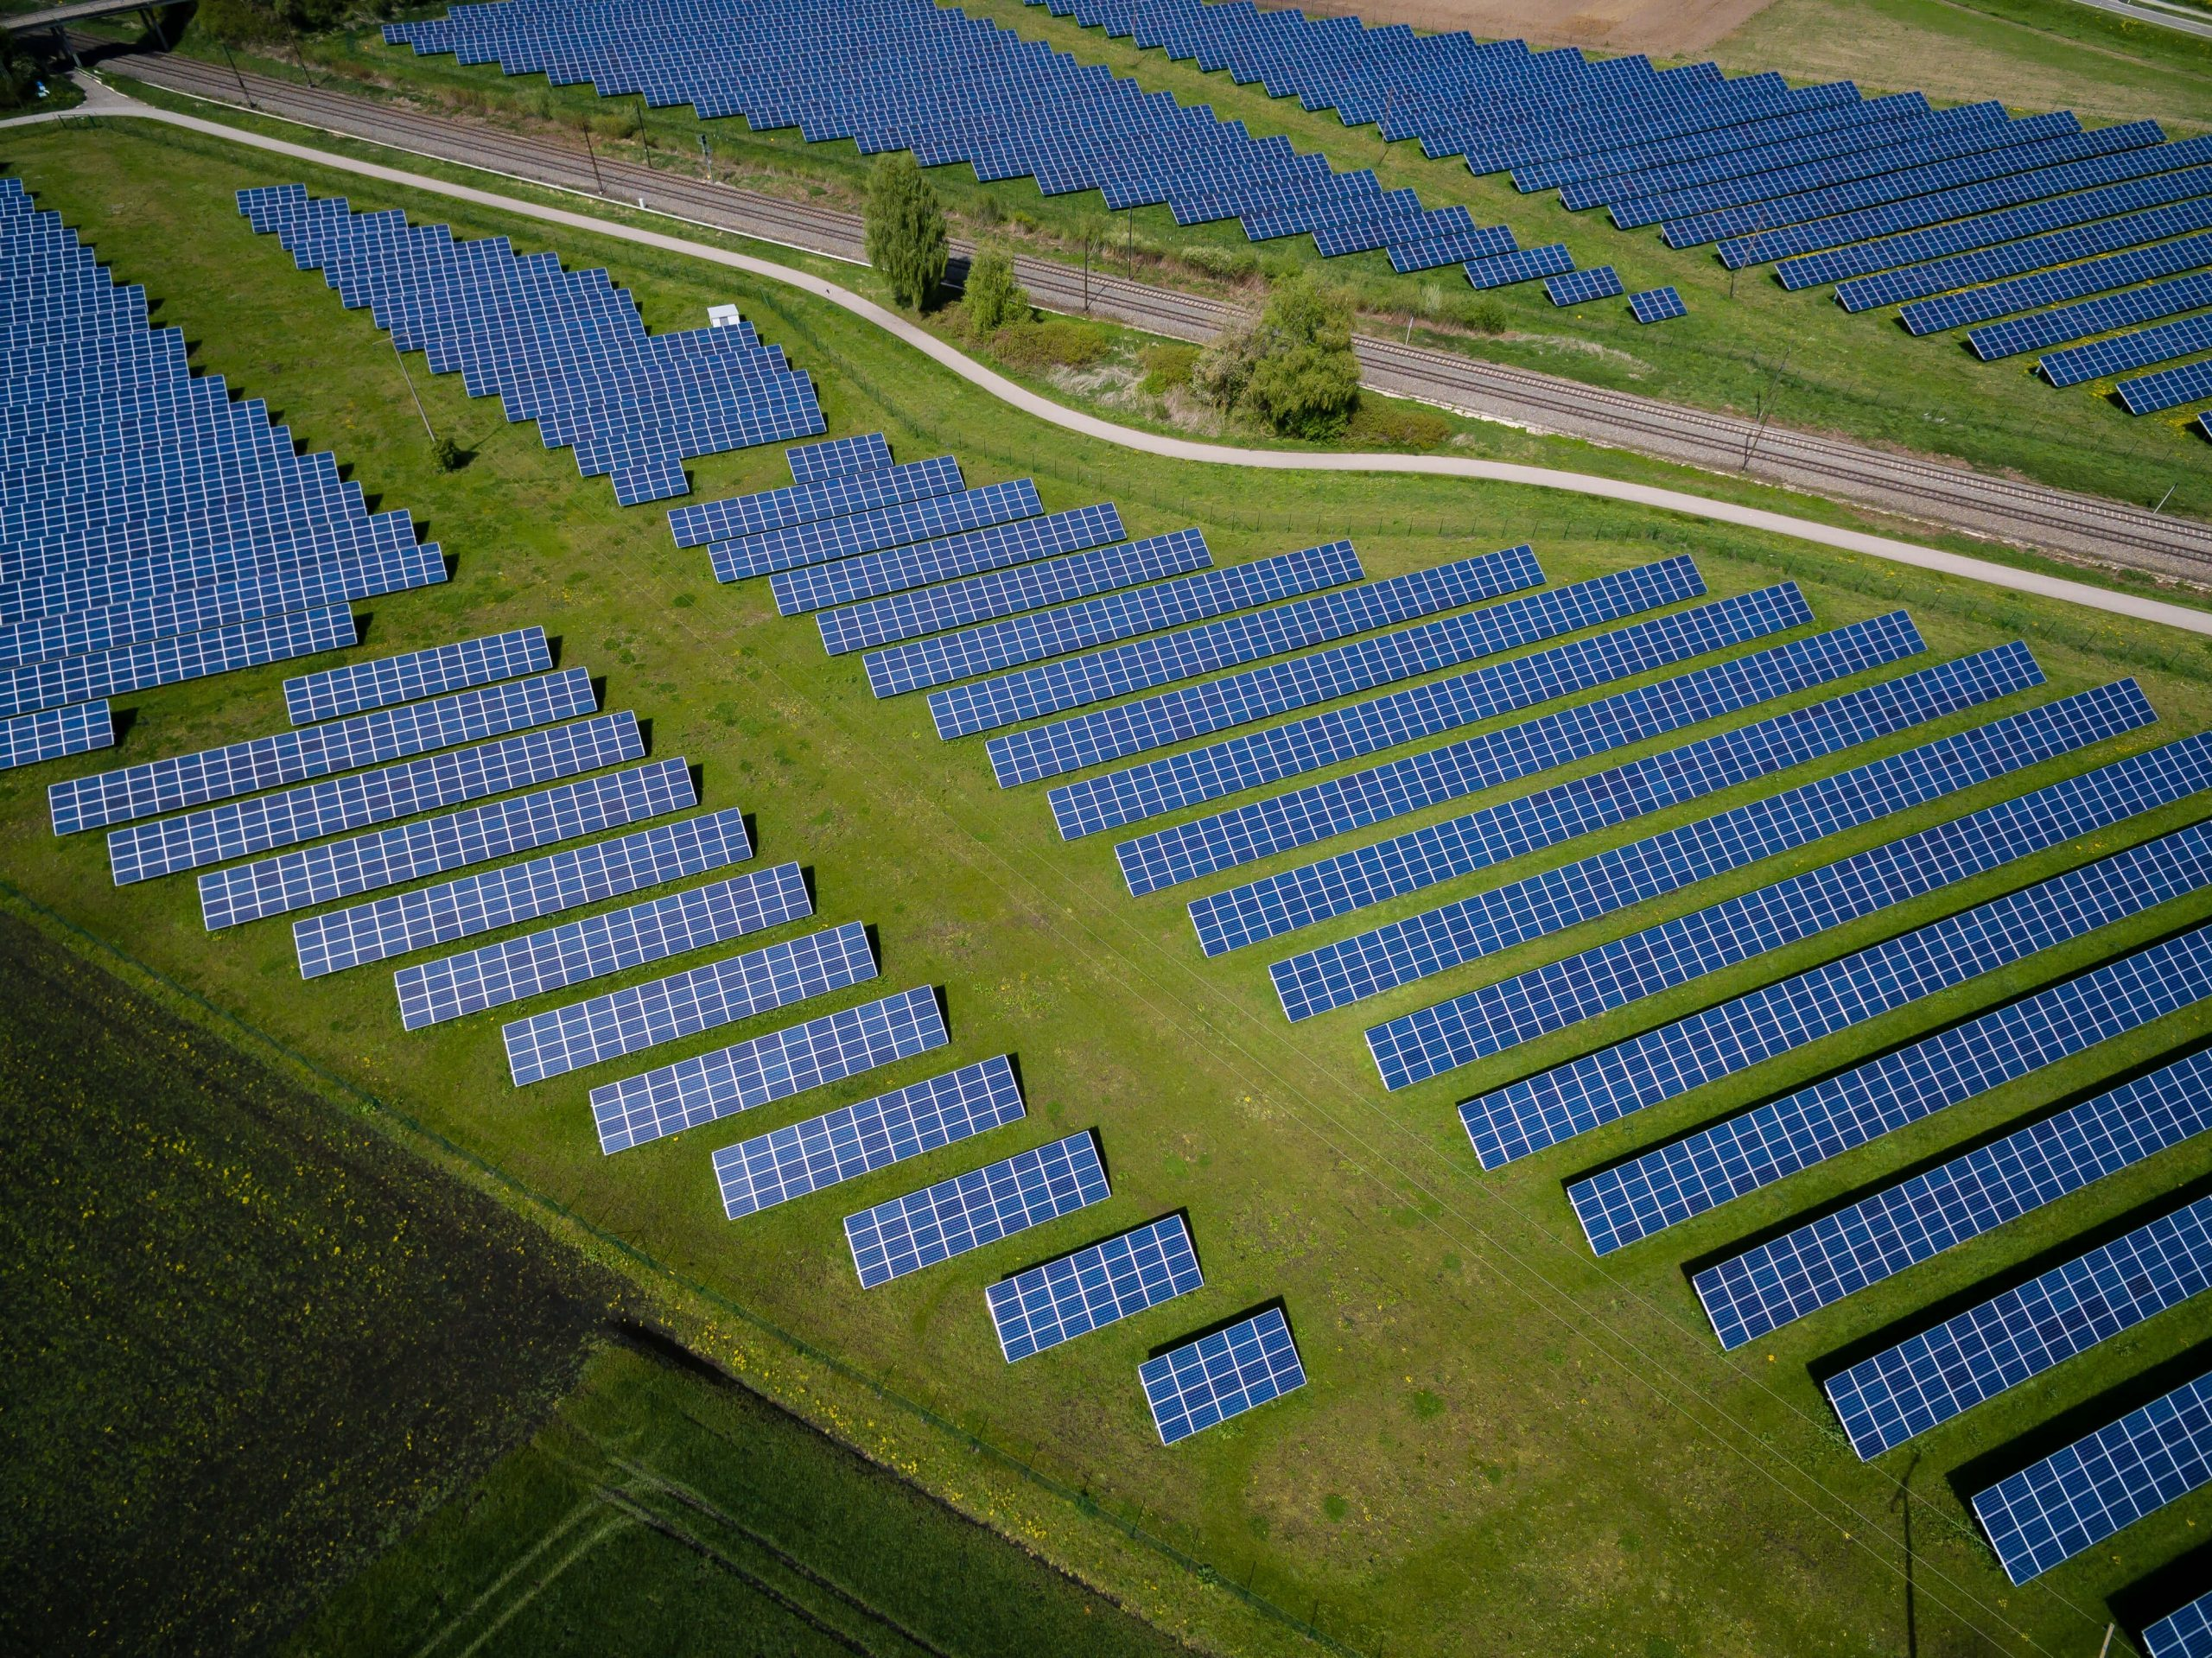 Renewable Energy Just Might Be Closer Than We Think